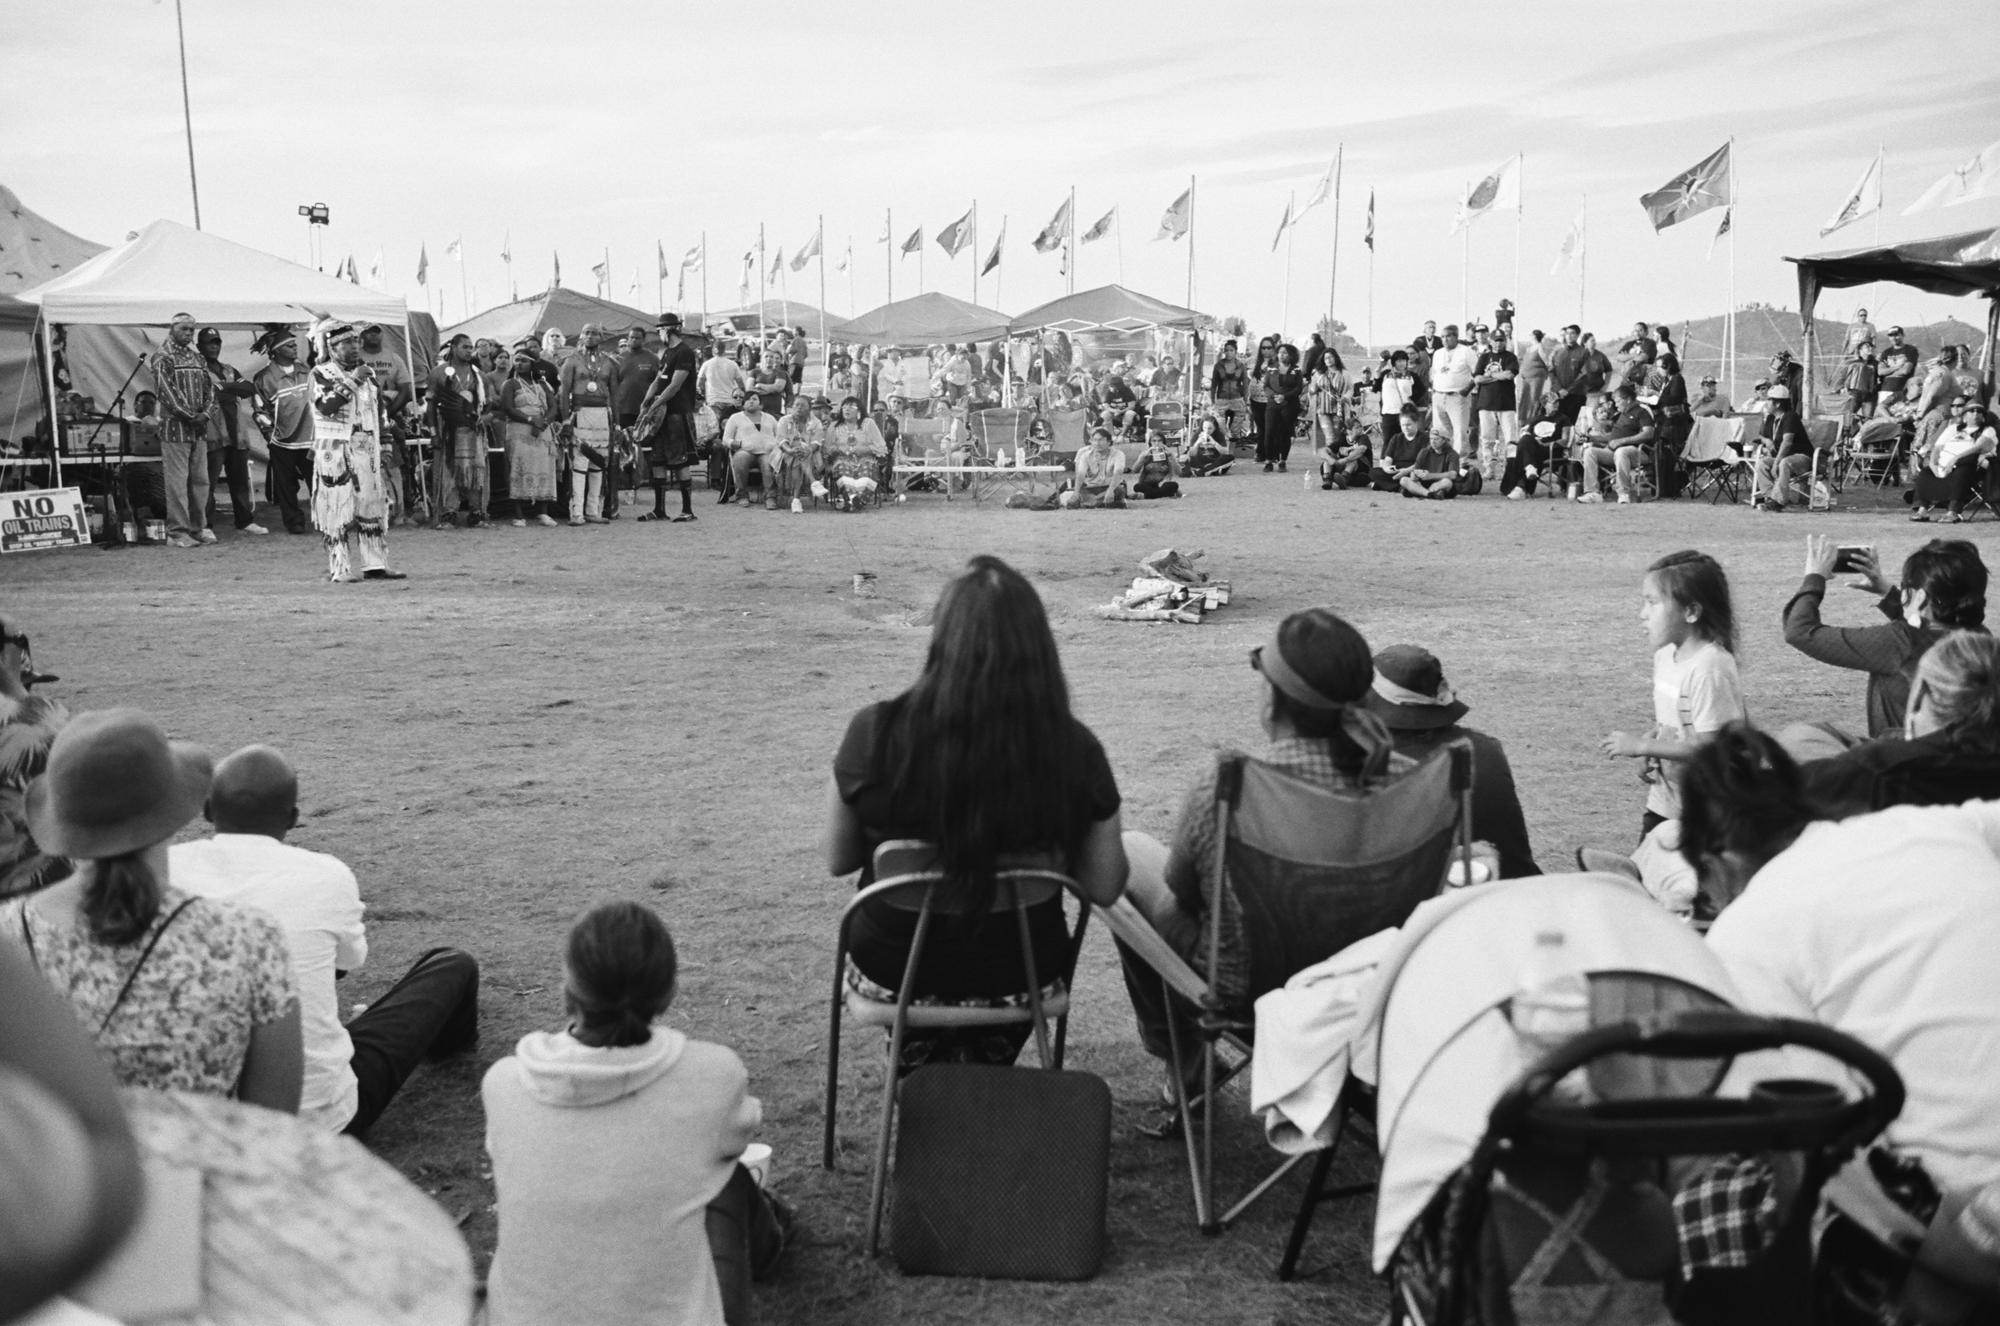 The sacred central fire at the heart of the Oceti Sakowin camp of the Standing Rock Sioux Tribe in North Dakota. A location that is in constant daily use for meals, prayer, talks, songs, dances, offerings, updates, lectures and humor.